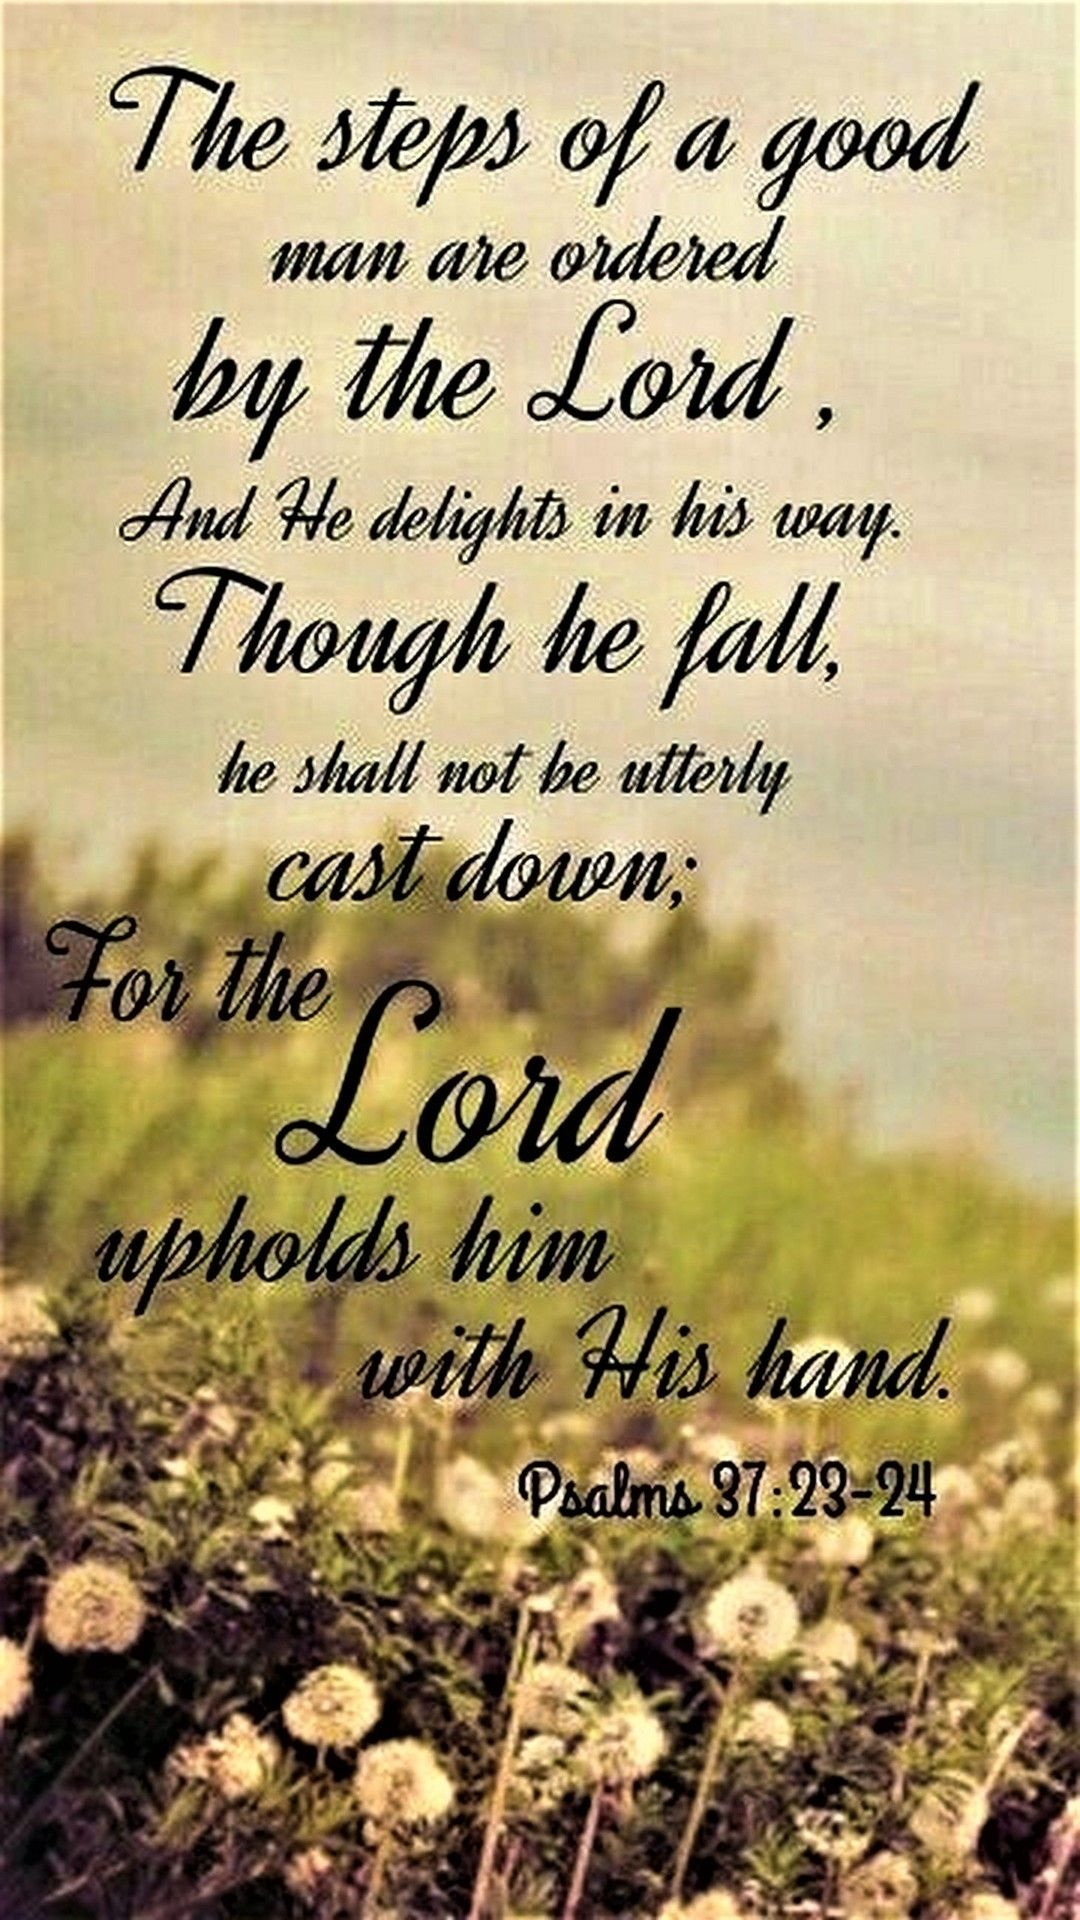 Psalm 37 23 24 Nkjv The Step Of A Good Man Are Ordered By Lord And He Delight In Hi Way Though Palm Sunday Quote Bible Scripture Verses 19 7 11